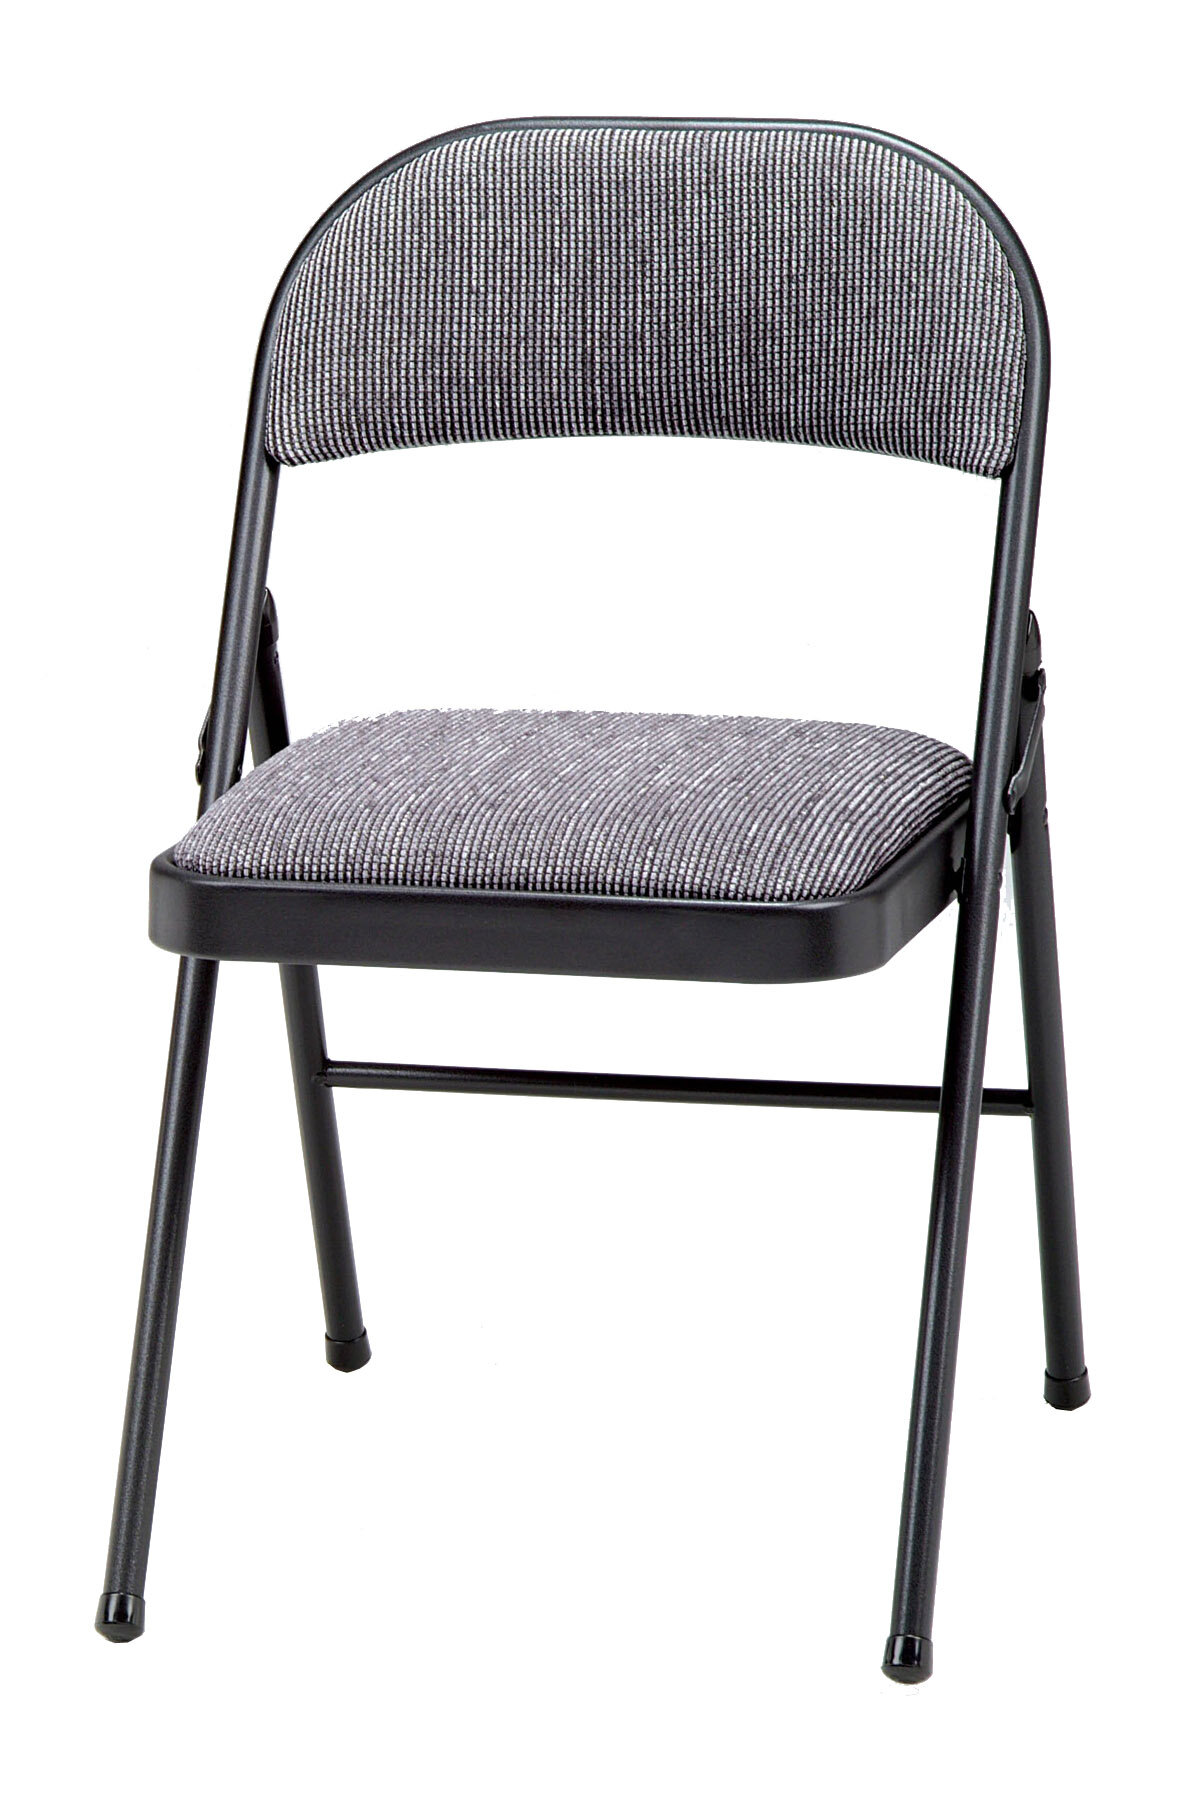 commercial folding chairs padded fabric ekenasfiber johnhenriksson rh ekenasfiber johnhenriksson se